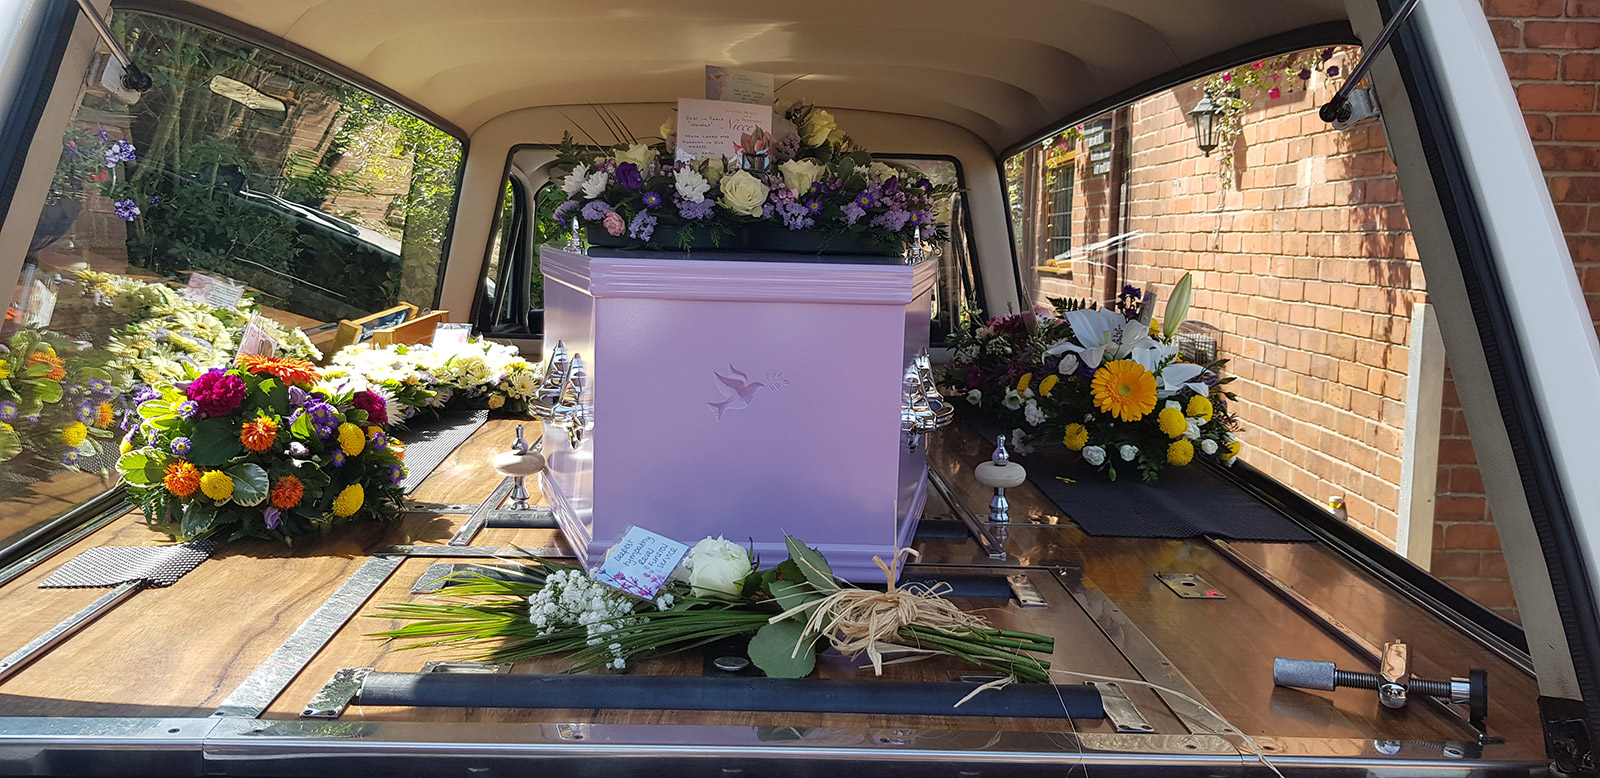 Funeral Flowers in Hearse